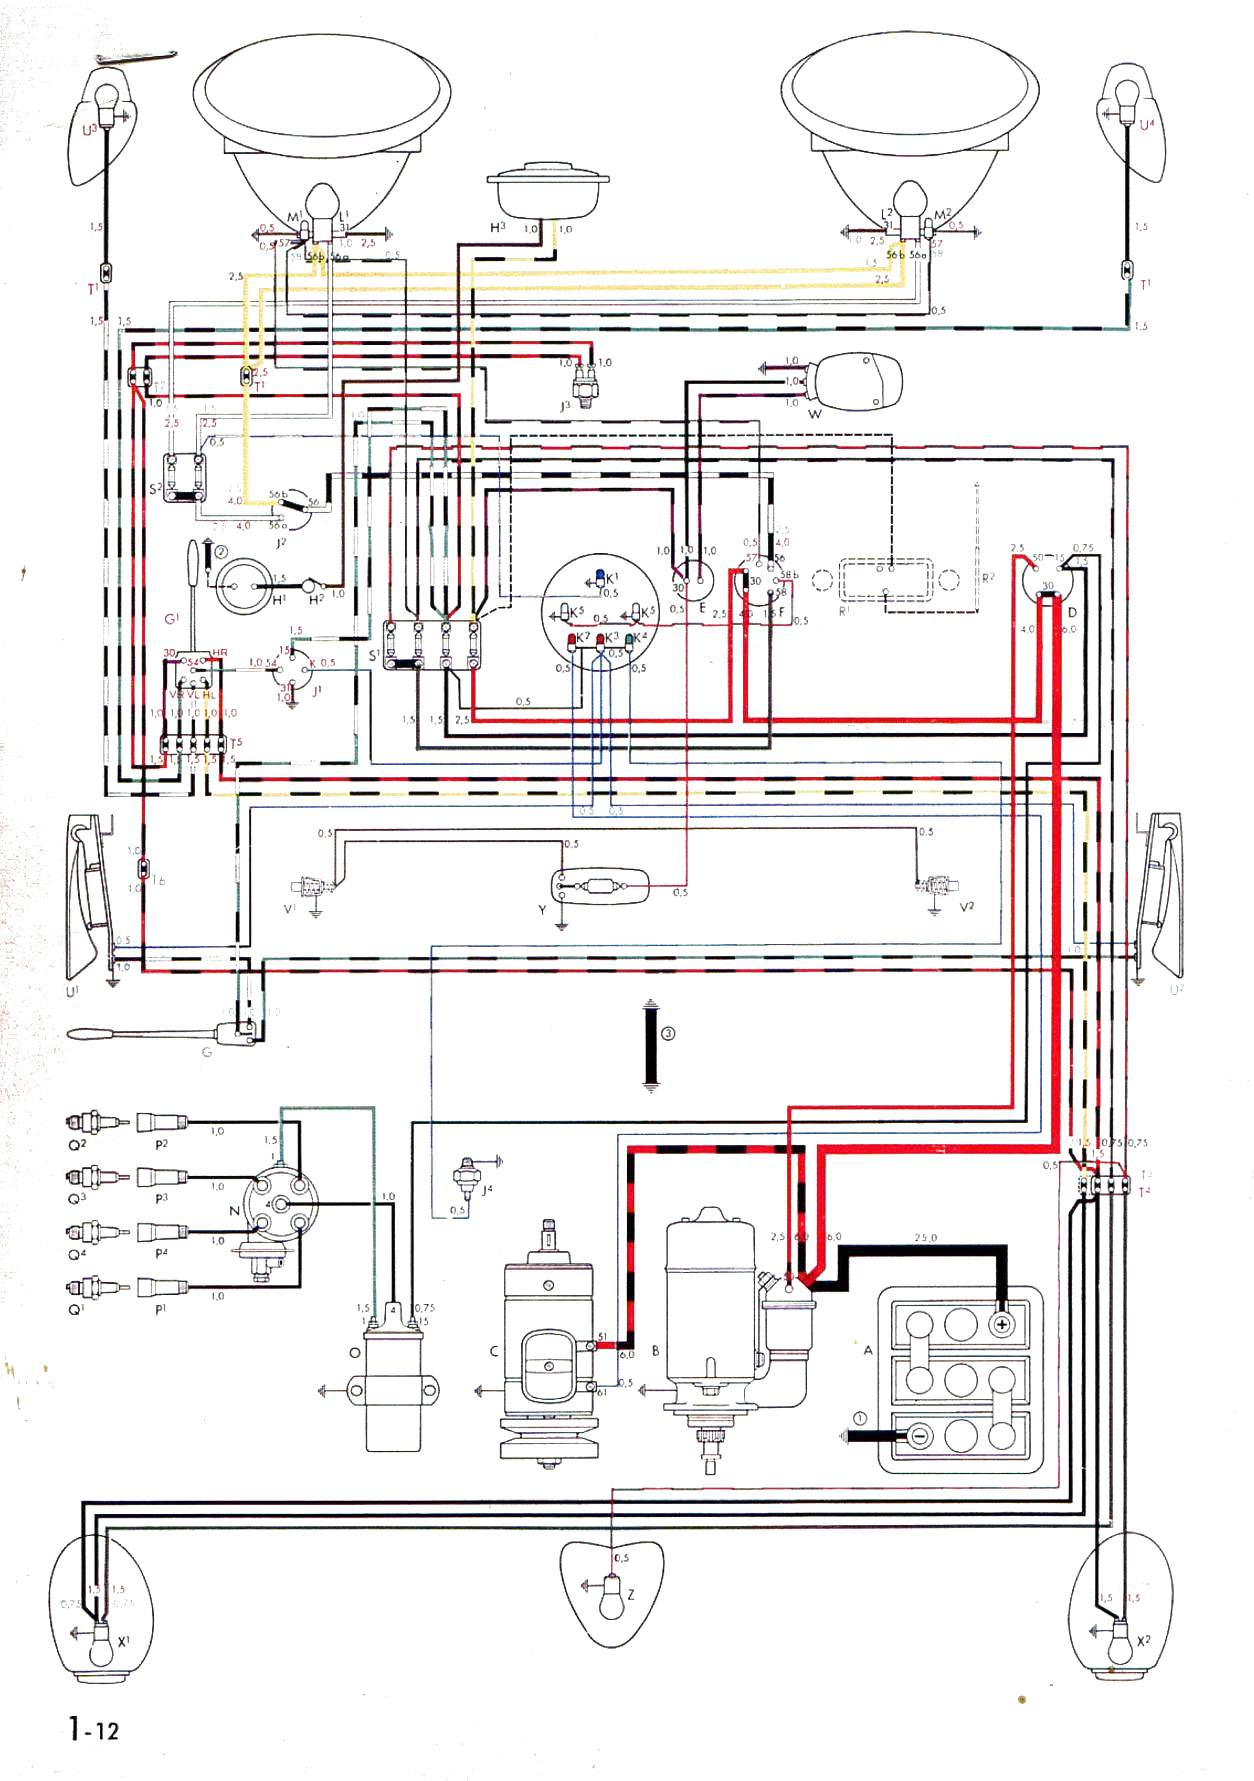 bug 55 57 vintagebus com vw bus (and other) wiring diagrams 1963 vw beetle wiring harness at panicattacktreatment.co